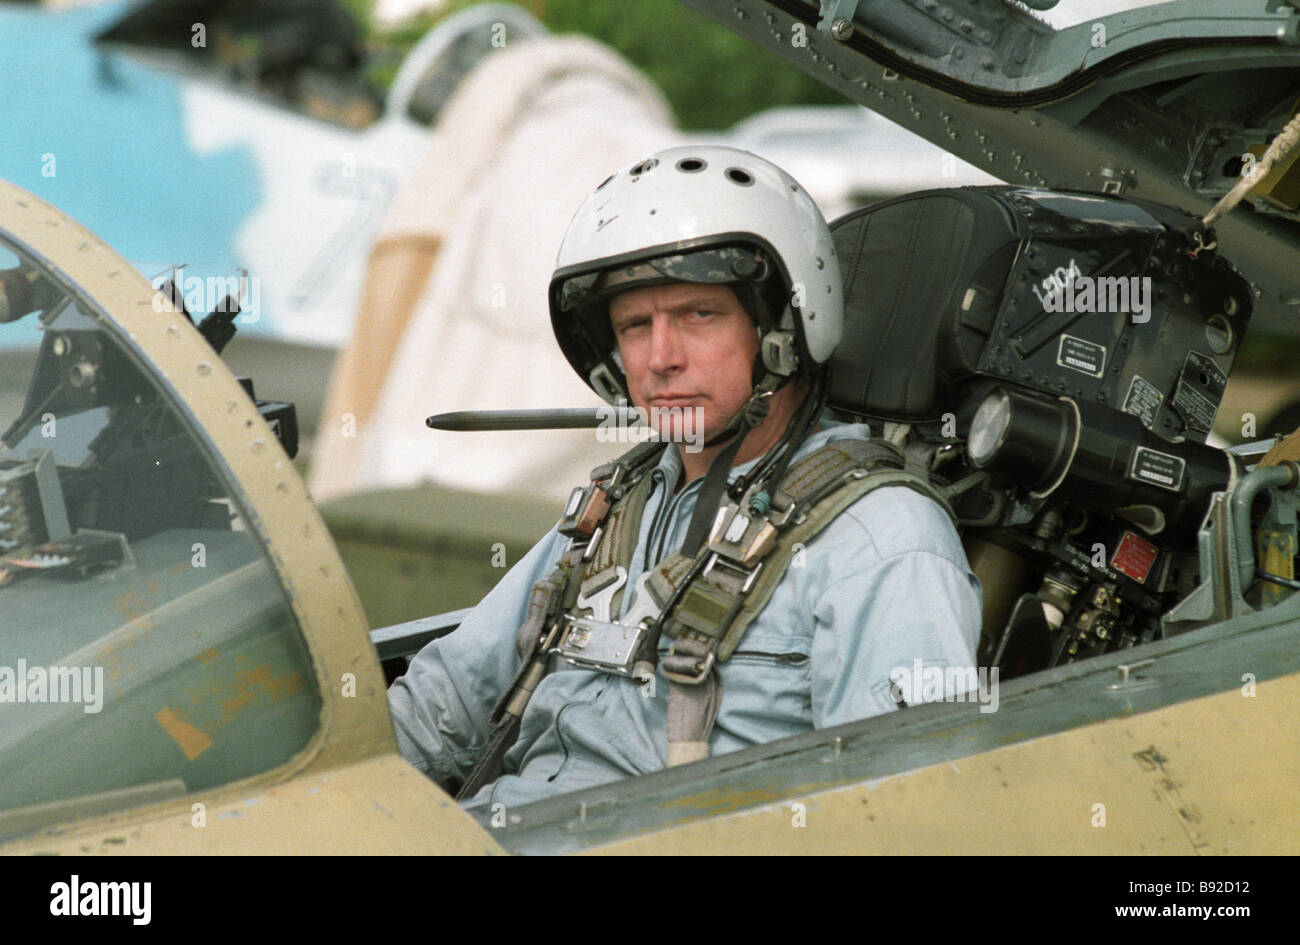 Test pilot in the cabin of the SU 37 during the MAKS 97 International Air Show - Stock Image